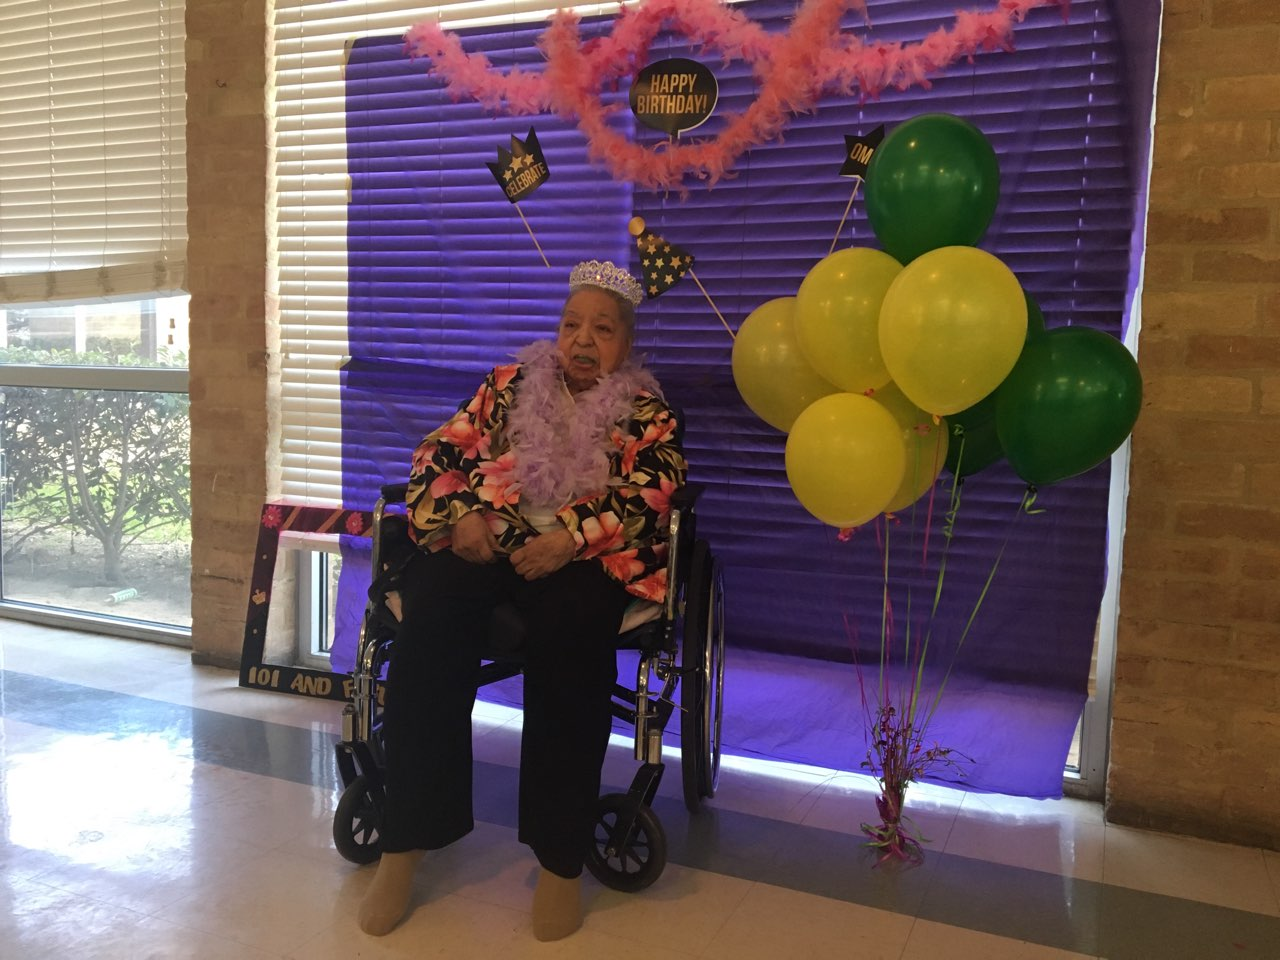 Lydia Olivarri celebrates 101 years (Photos: Sinclair Broadcast Group)